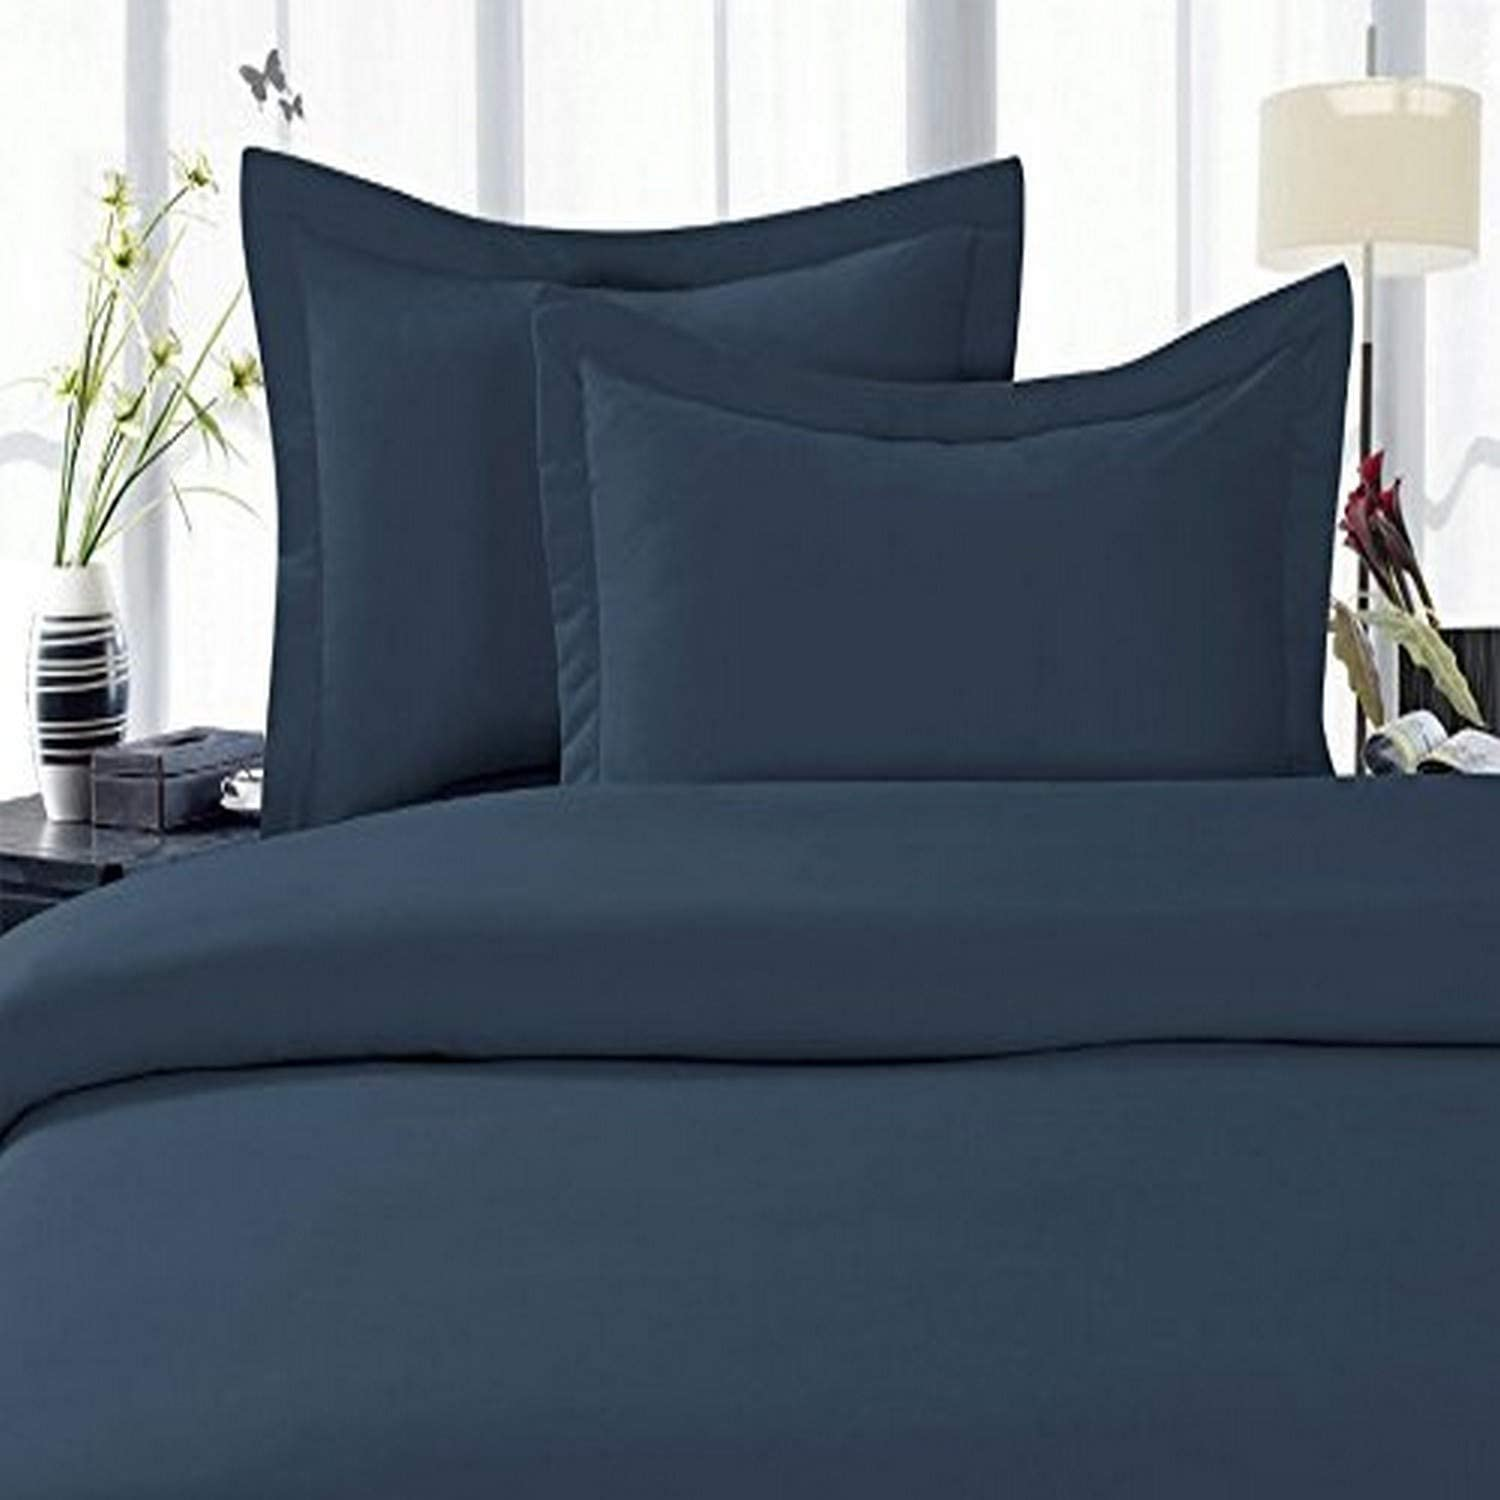 Elegant Comfort 1500 Thread Count Egyptian Quality 3 Piece Wrinkle Free and Fade Resistant Luxurious Duvet Cover Set, Full/Queen, Navy Blue